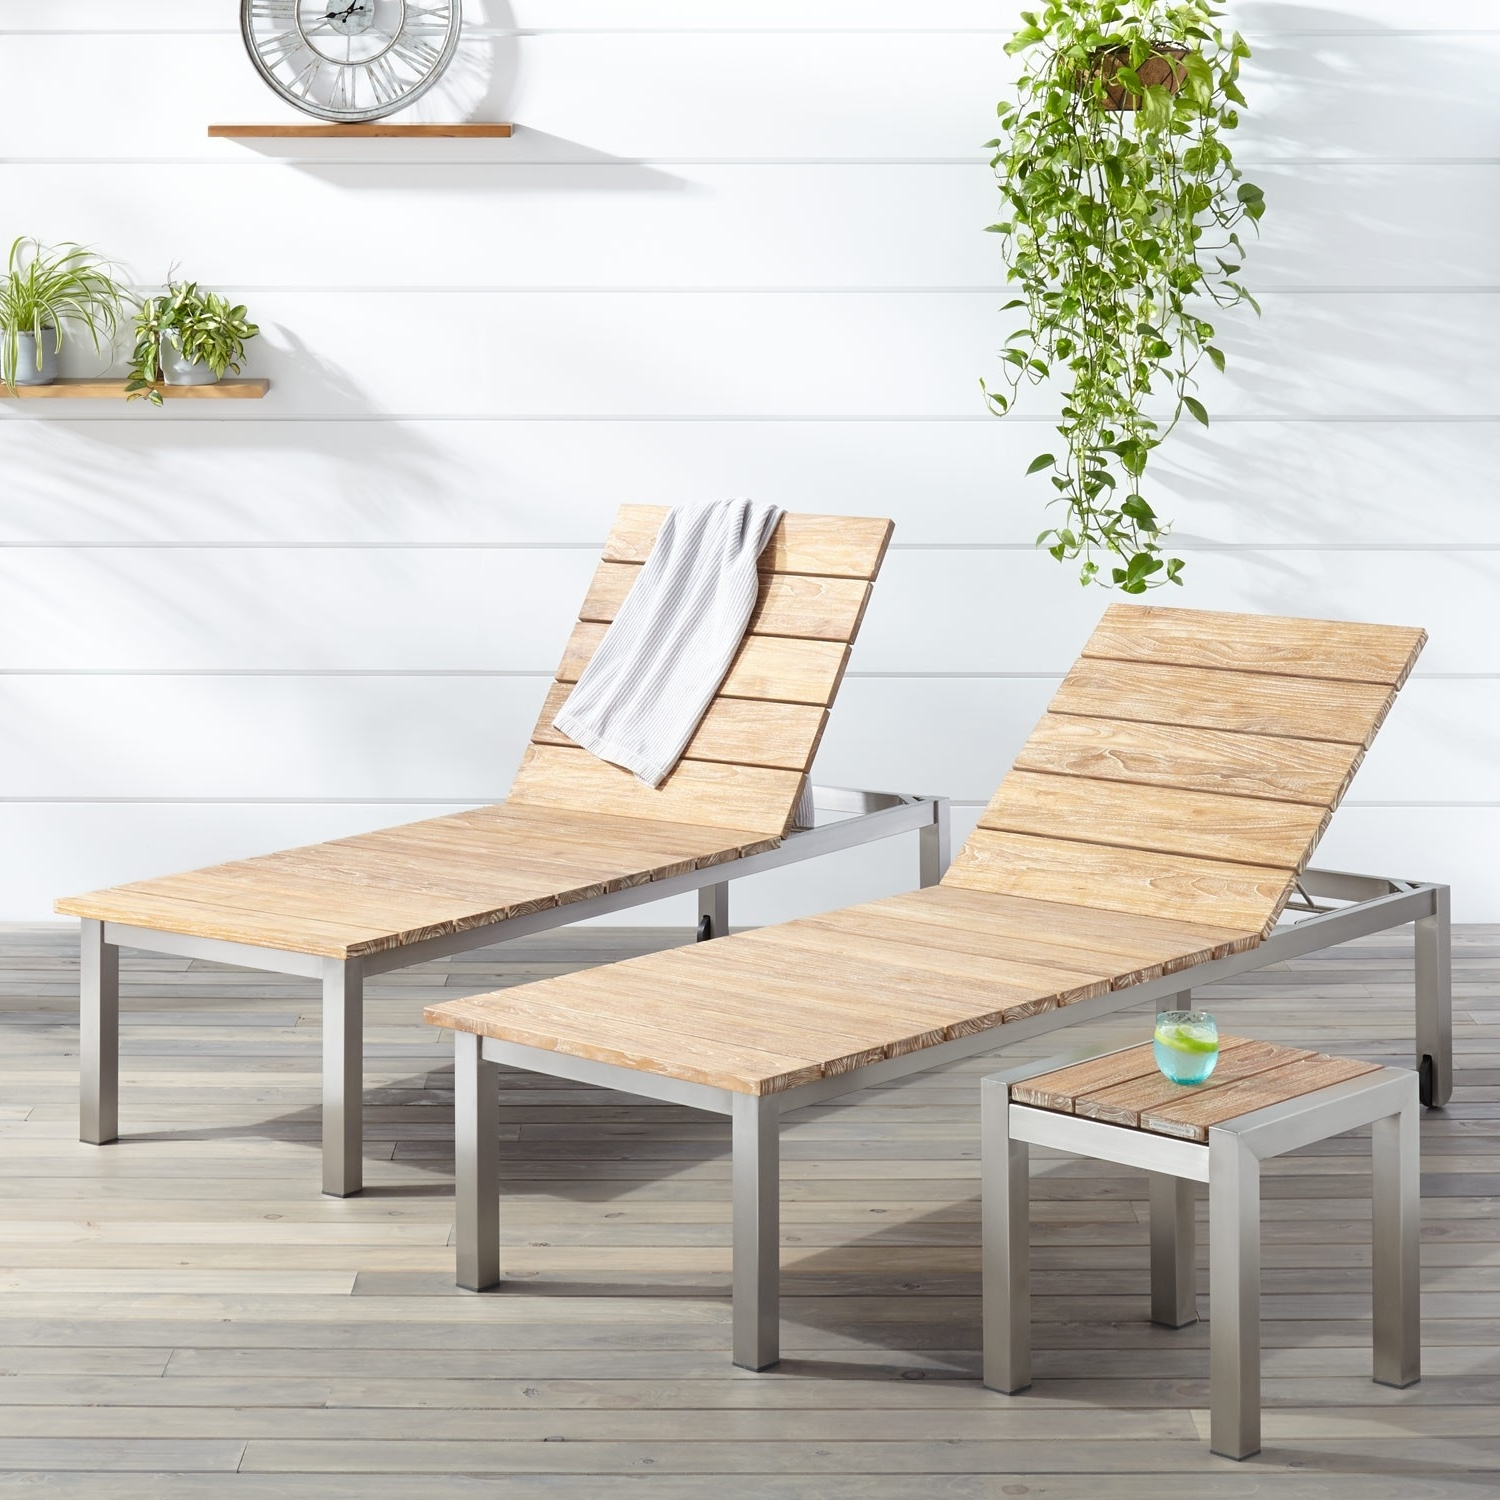 Famous Outdoor Chaise Lounges In Macon 3 Piece Teak Outdoor Chaise Lounge Chair Set – Whitewash (View 11 of 15)